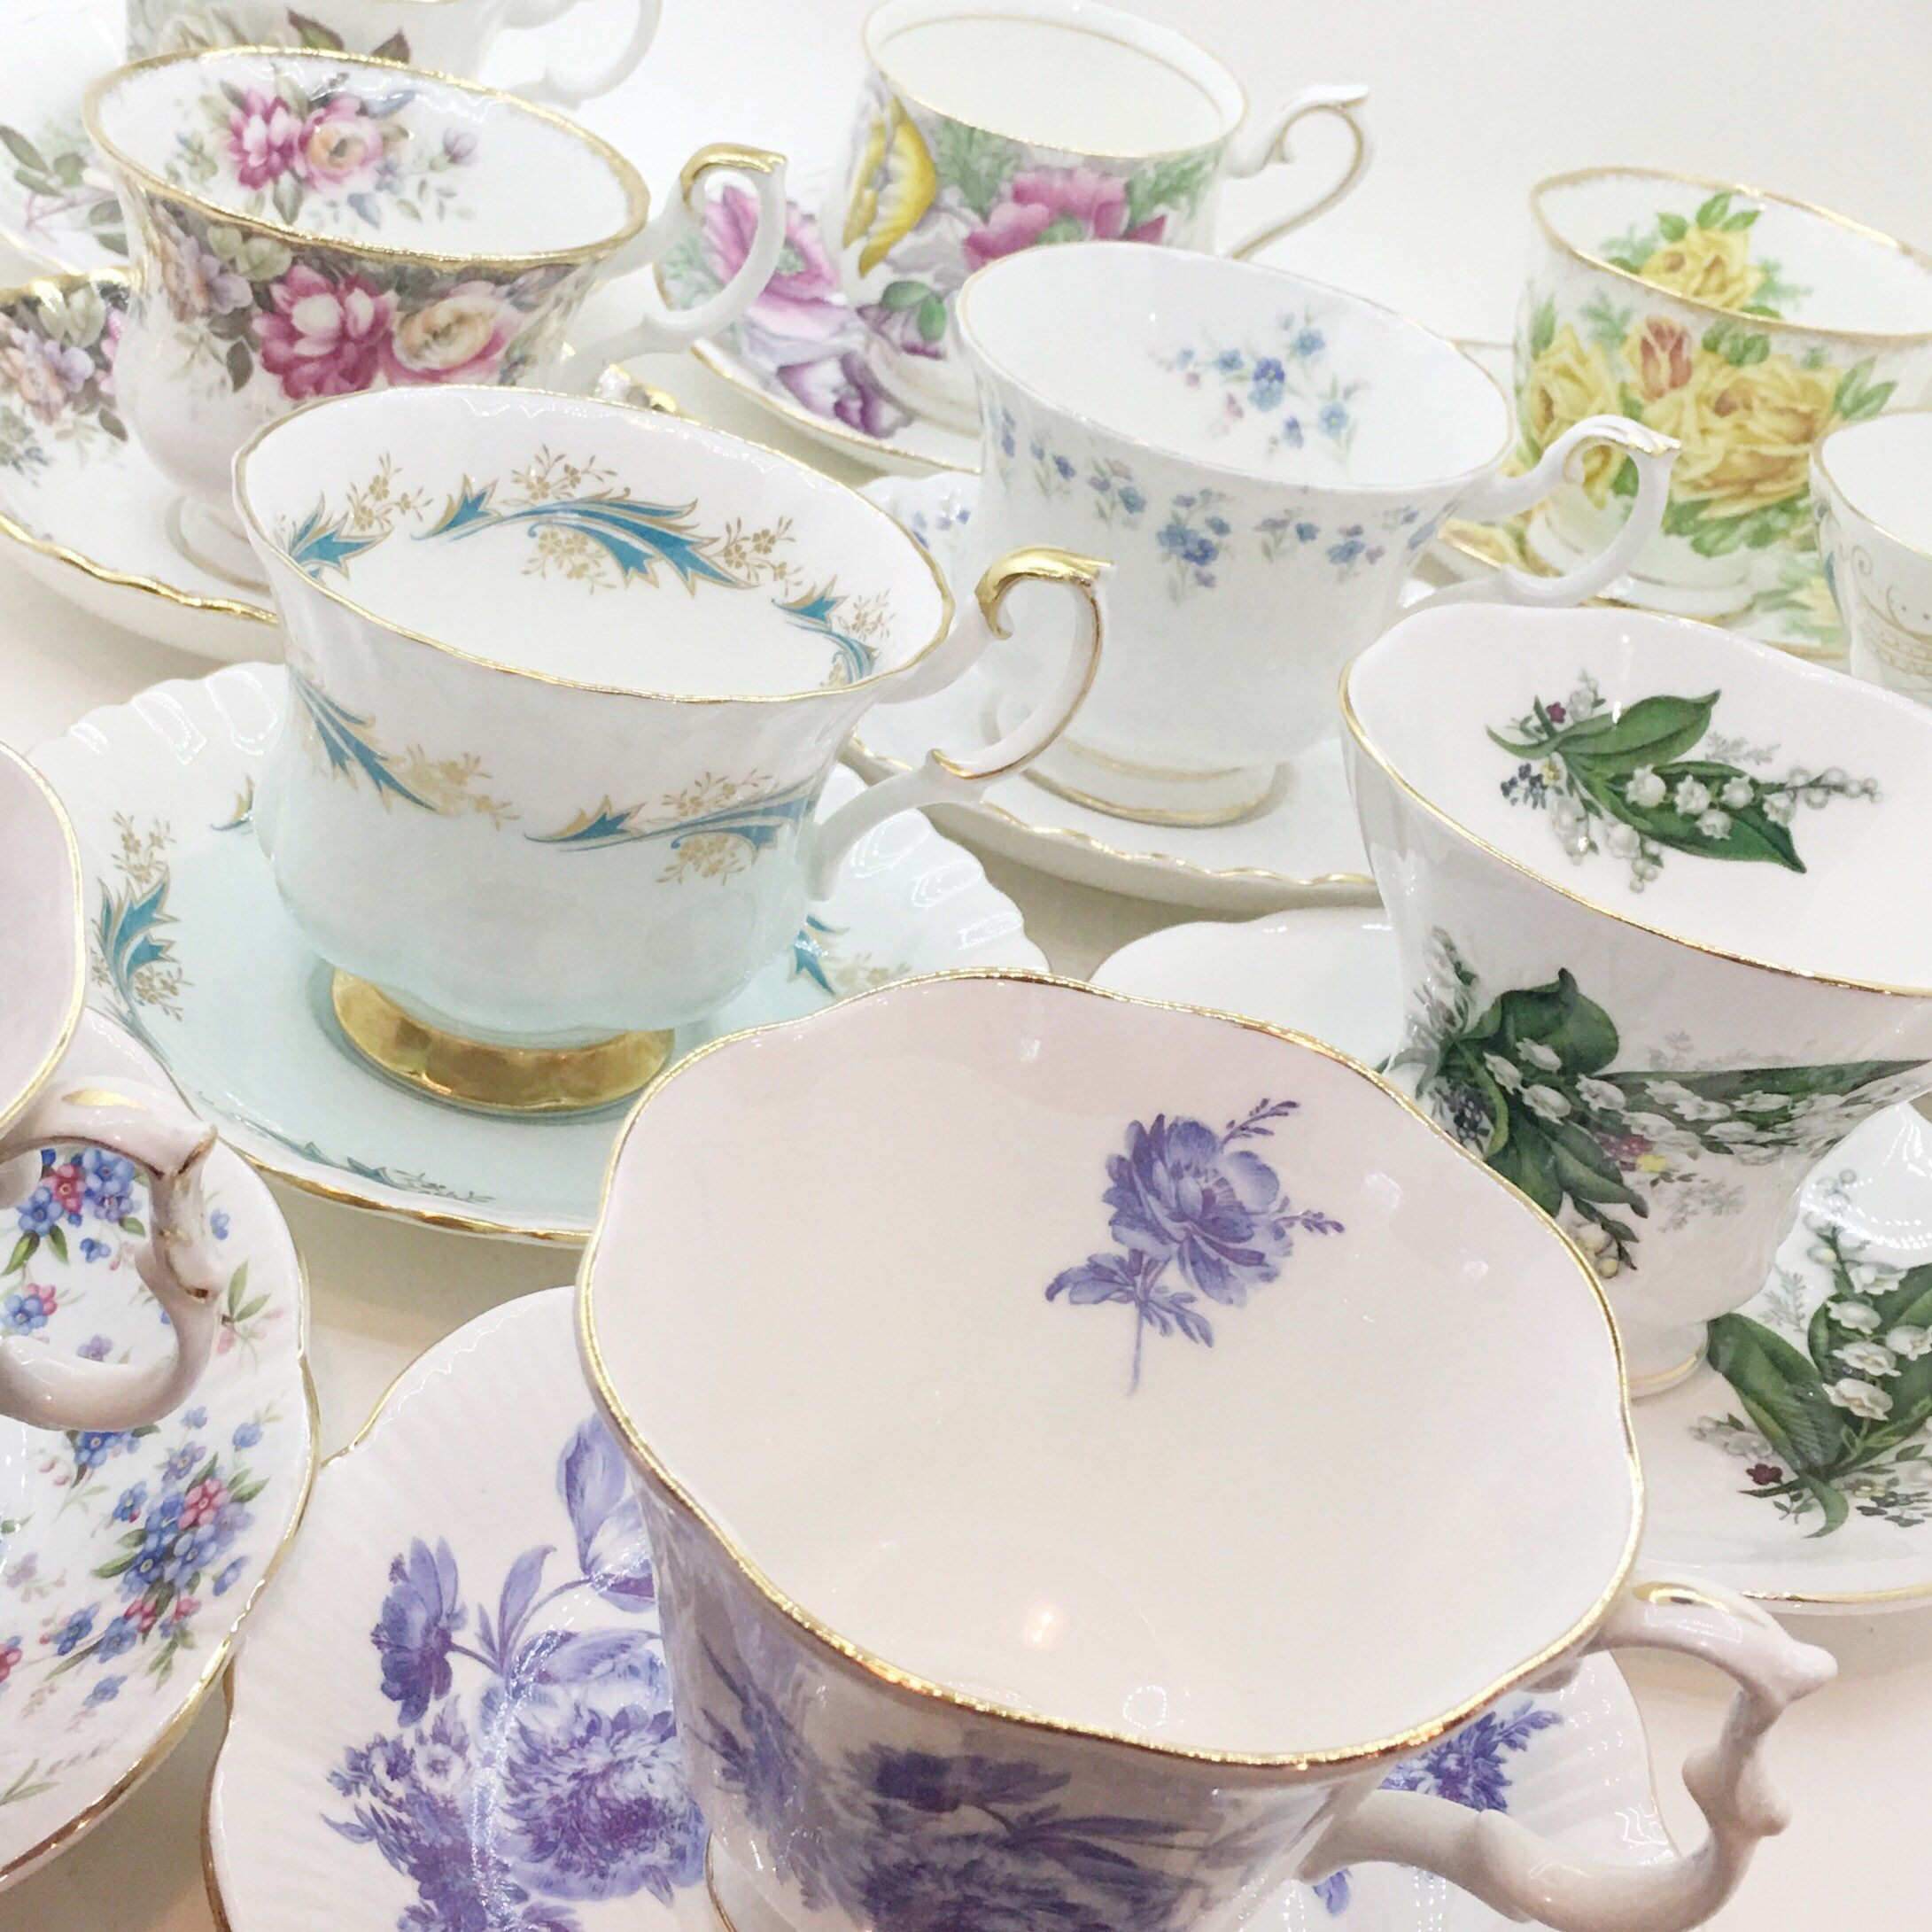 10 Royal Albert Tea Cup Sets Mix and Match Vintage Tea Cups